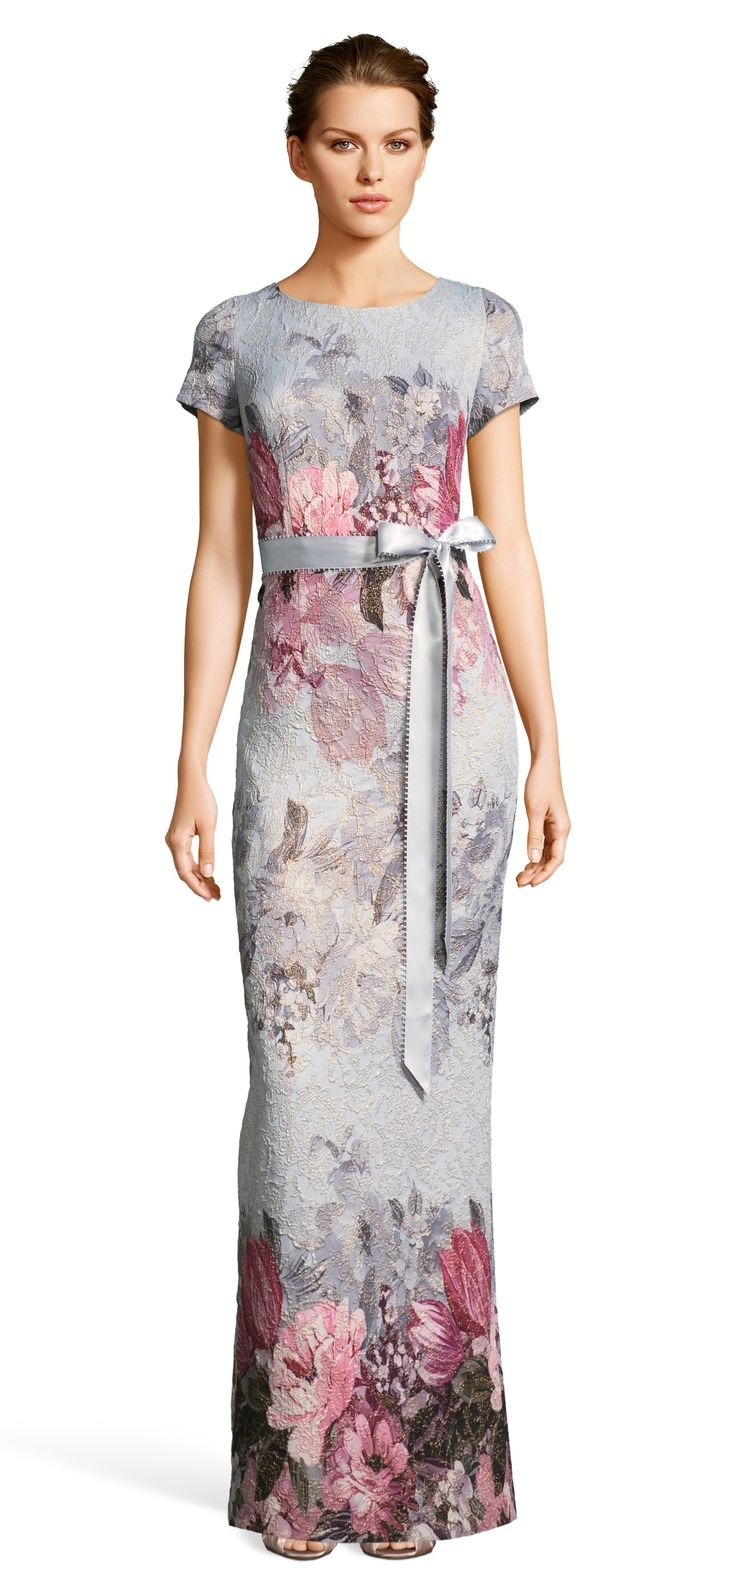 Beautiful blooms blossom throughout this beloved look. This formal dress features a circle neckline, short sleeves, a fitted bodice with a satin ribbon self-tie sash that nips at the waist, and a long column skirt with a slit at the back. Florals fade in and out of view throughout the printed jacquard fabric that has stretch. A zipper closure can be found at the back. We love this floral dress for any member of the bridal party from mom to bridesmaids.